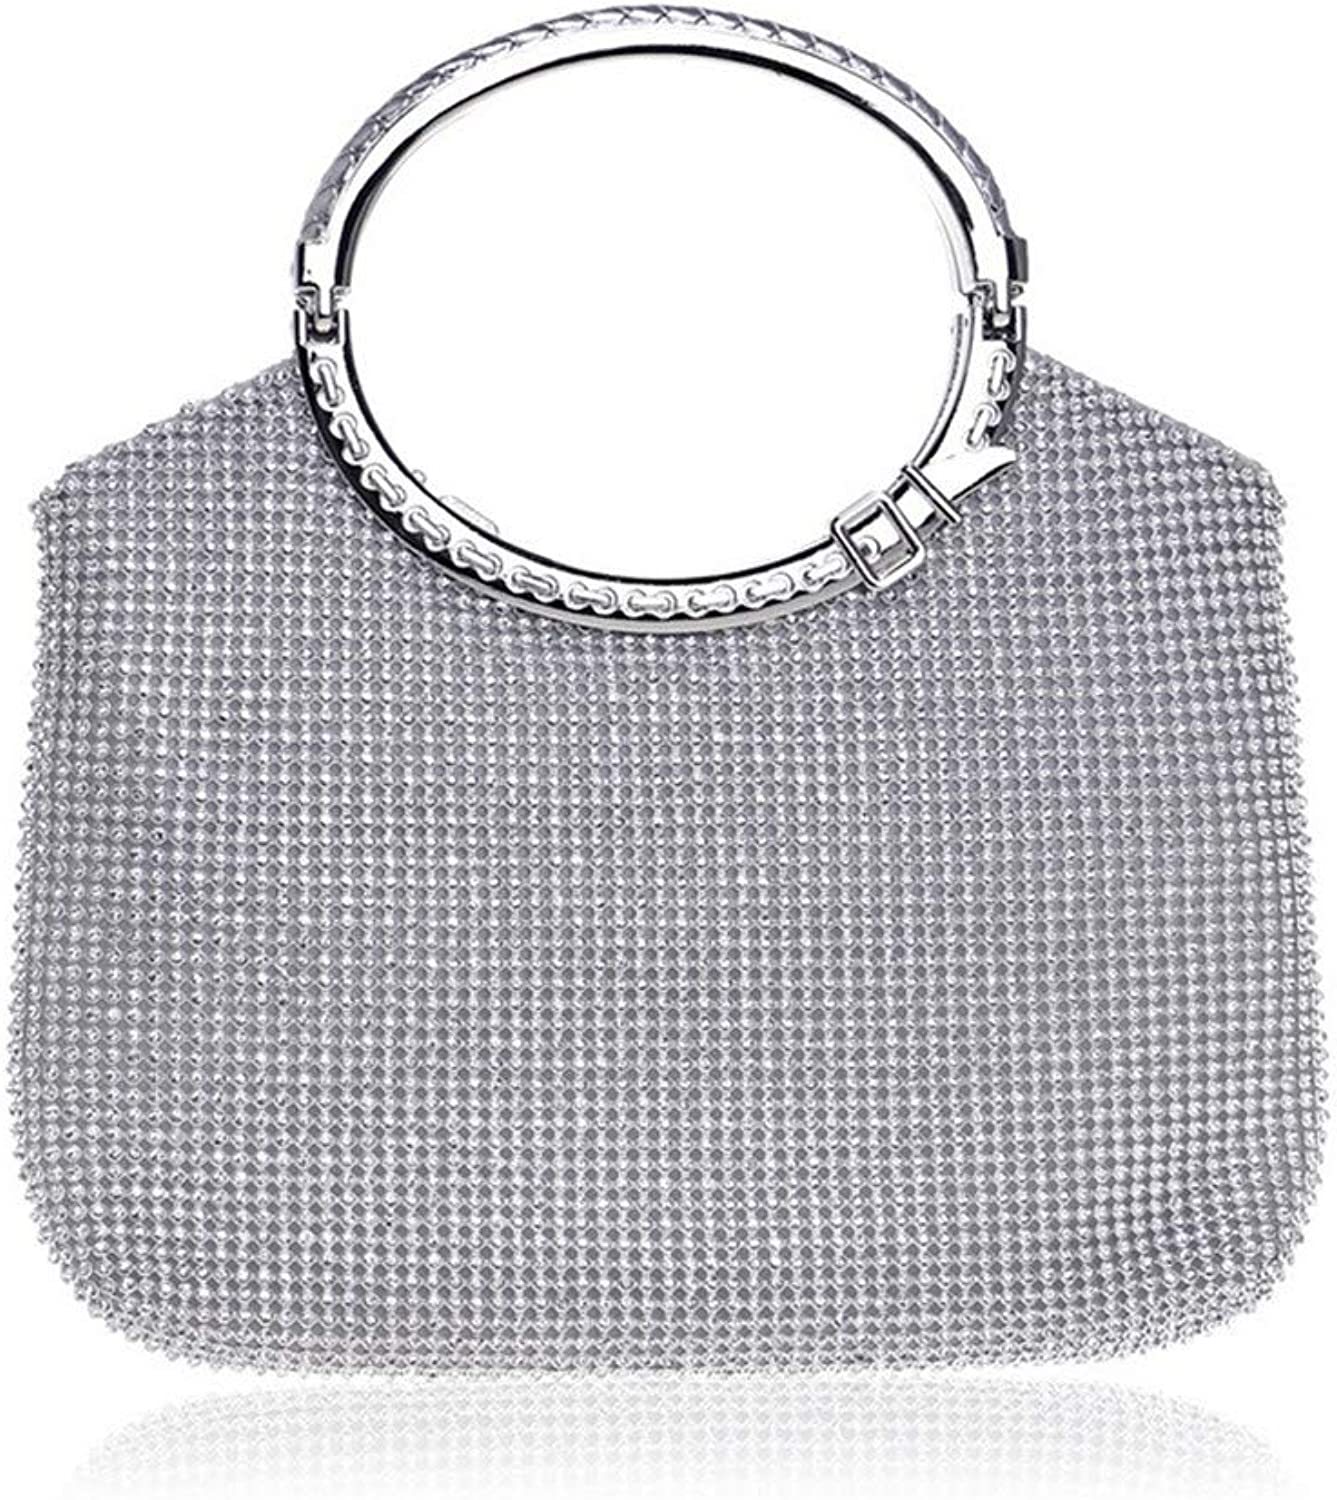 Sturdy Fashian Rhinestone Crystal Clutch Purse Large Clutches Women Evening Bags for Wedding Party Large Capacity (color   B)